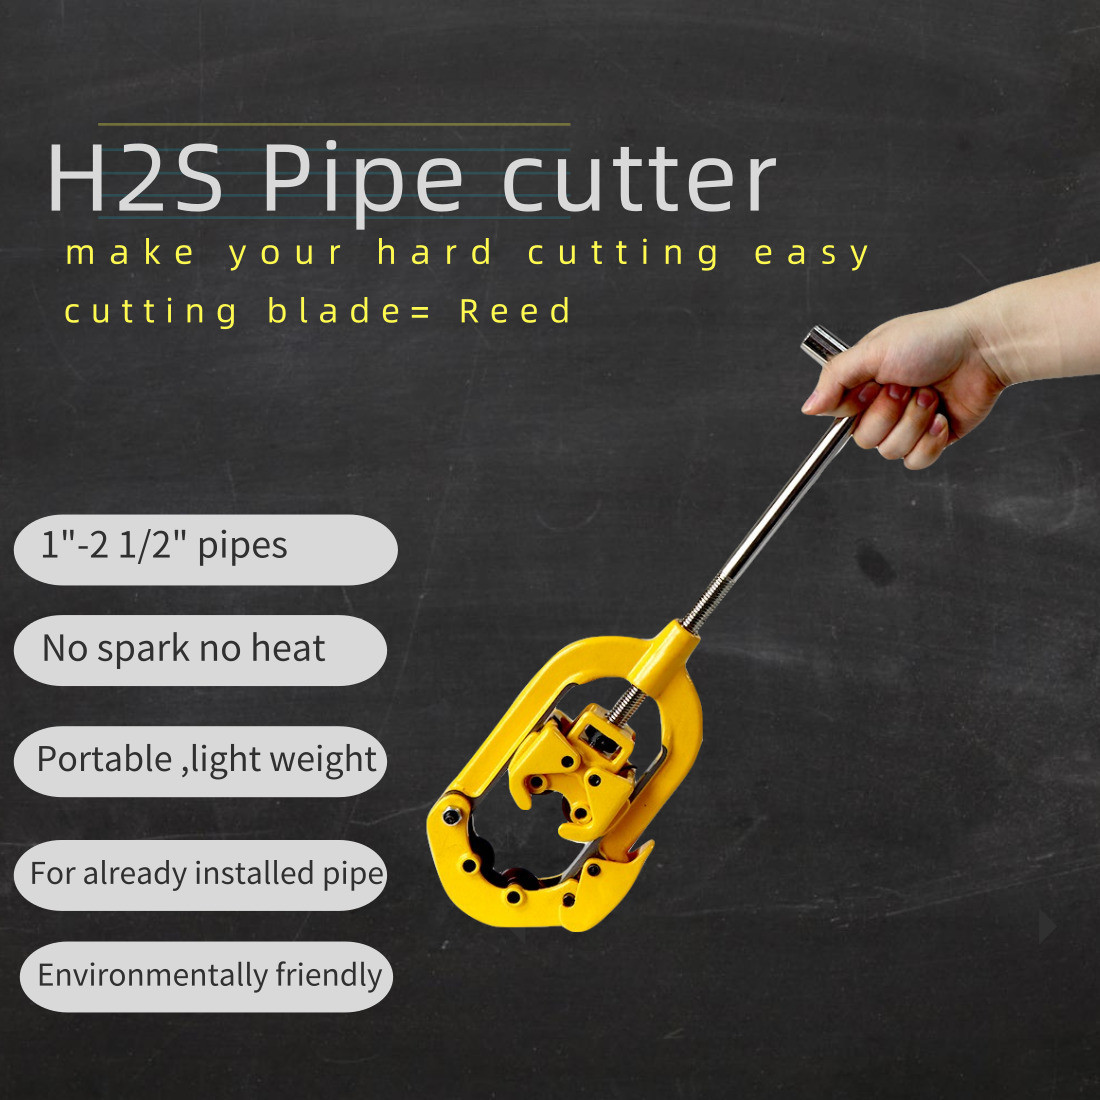 H2S pipe cutter features